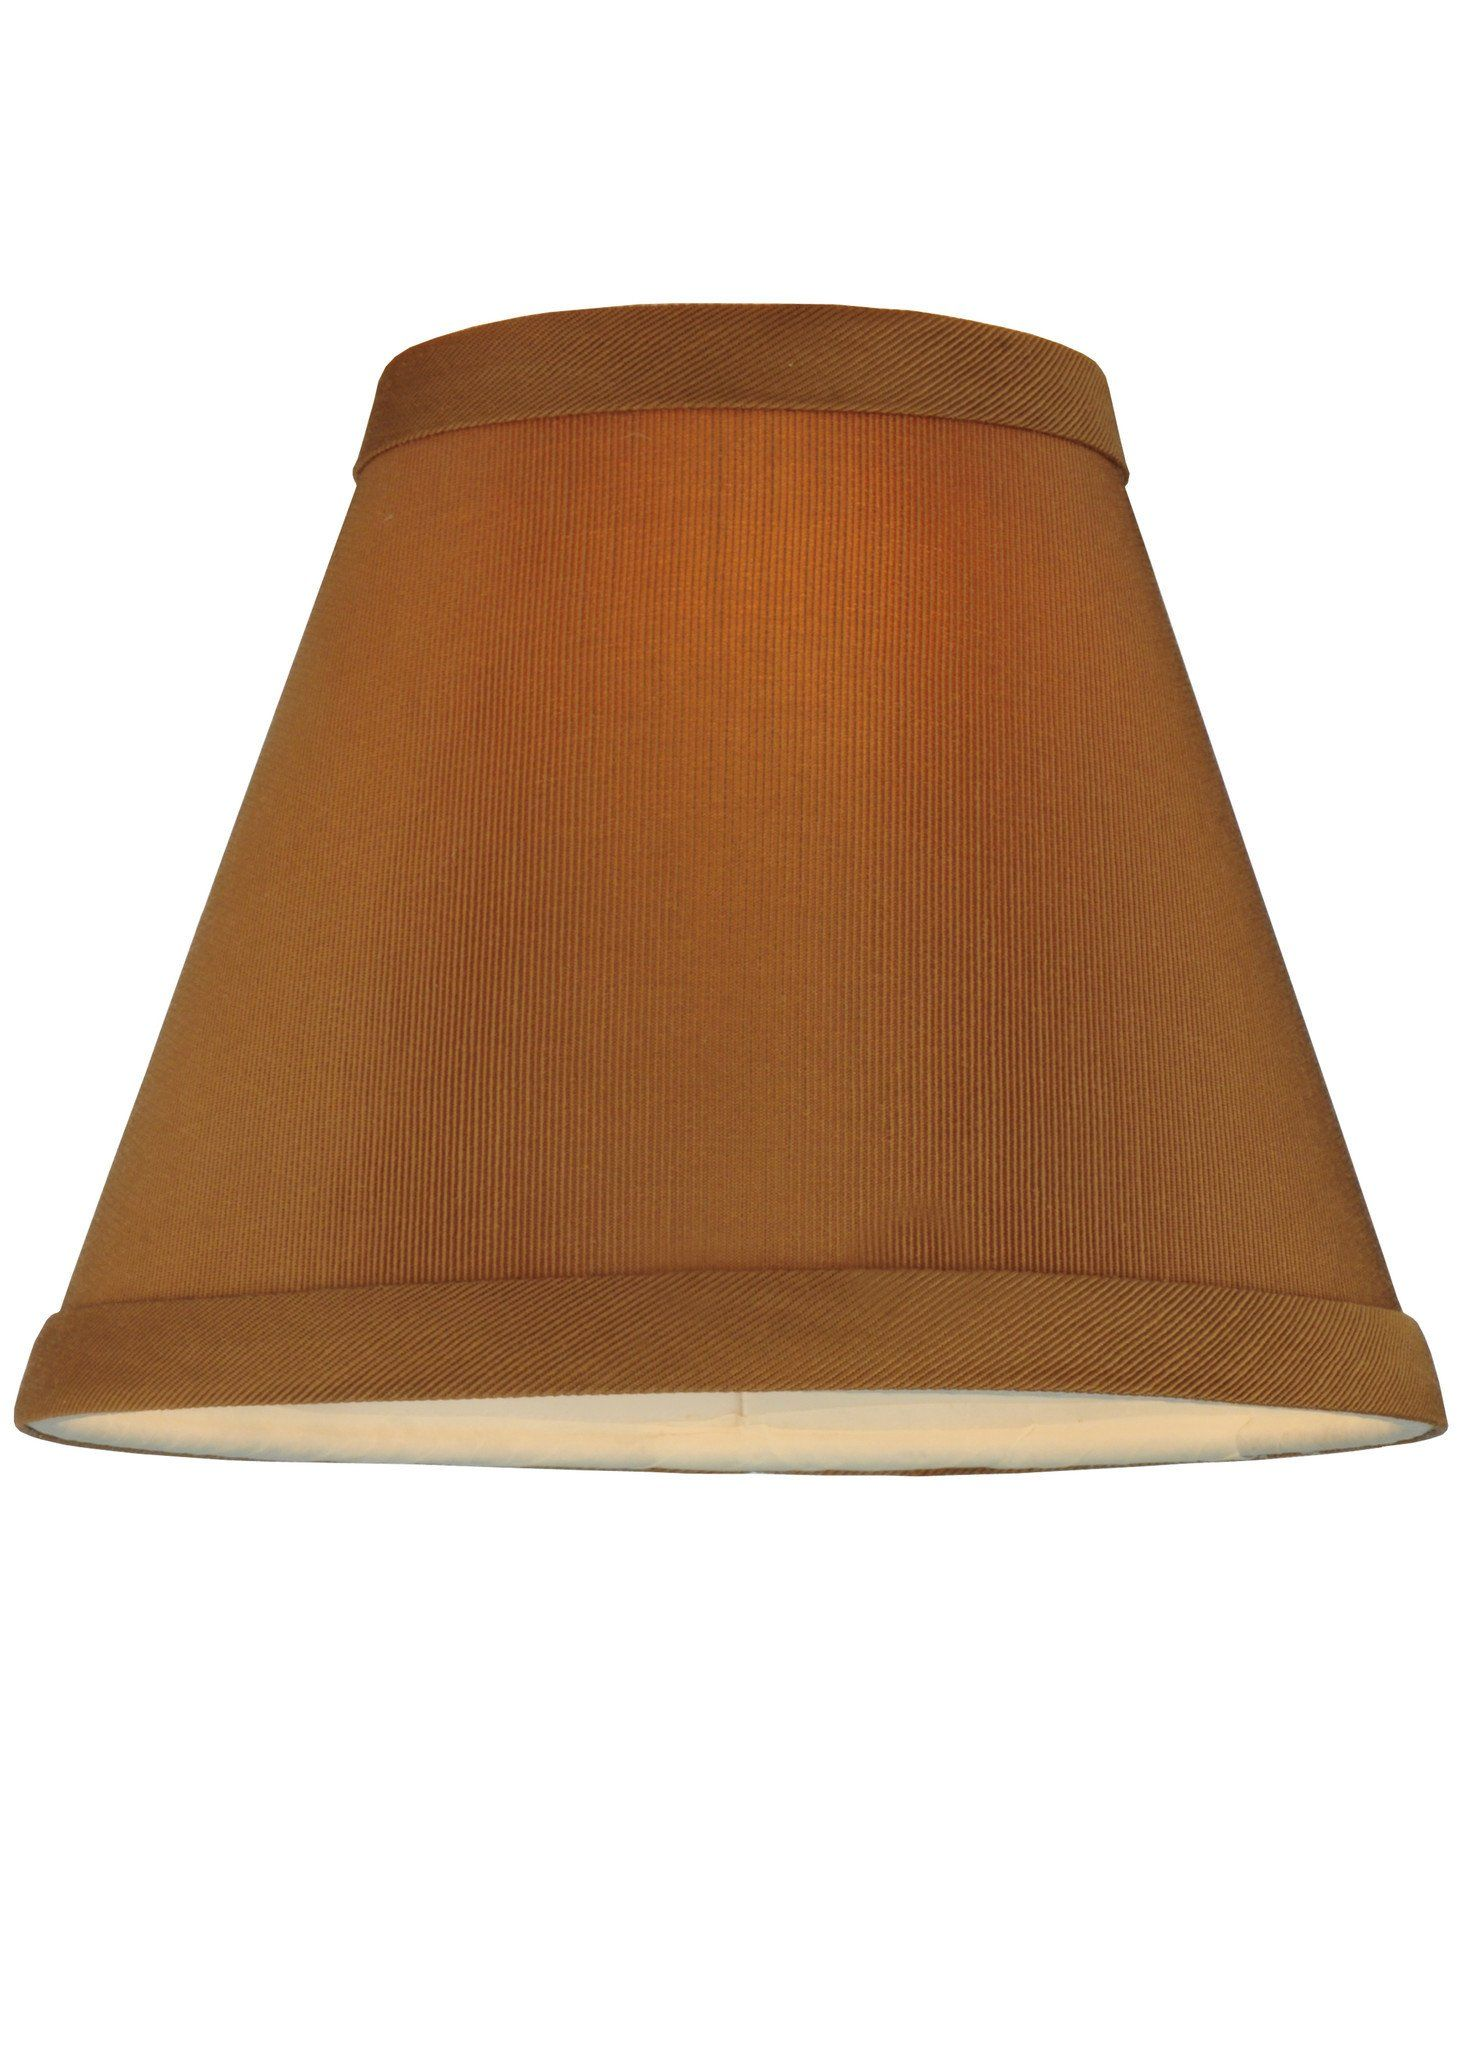 6 Inch W X 4.75 Inch H Faille Taupe Shade